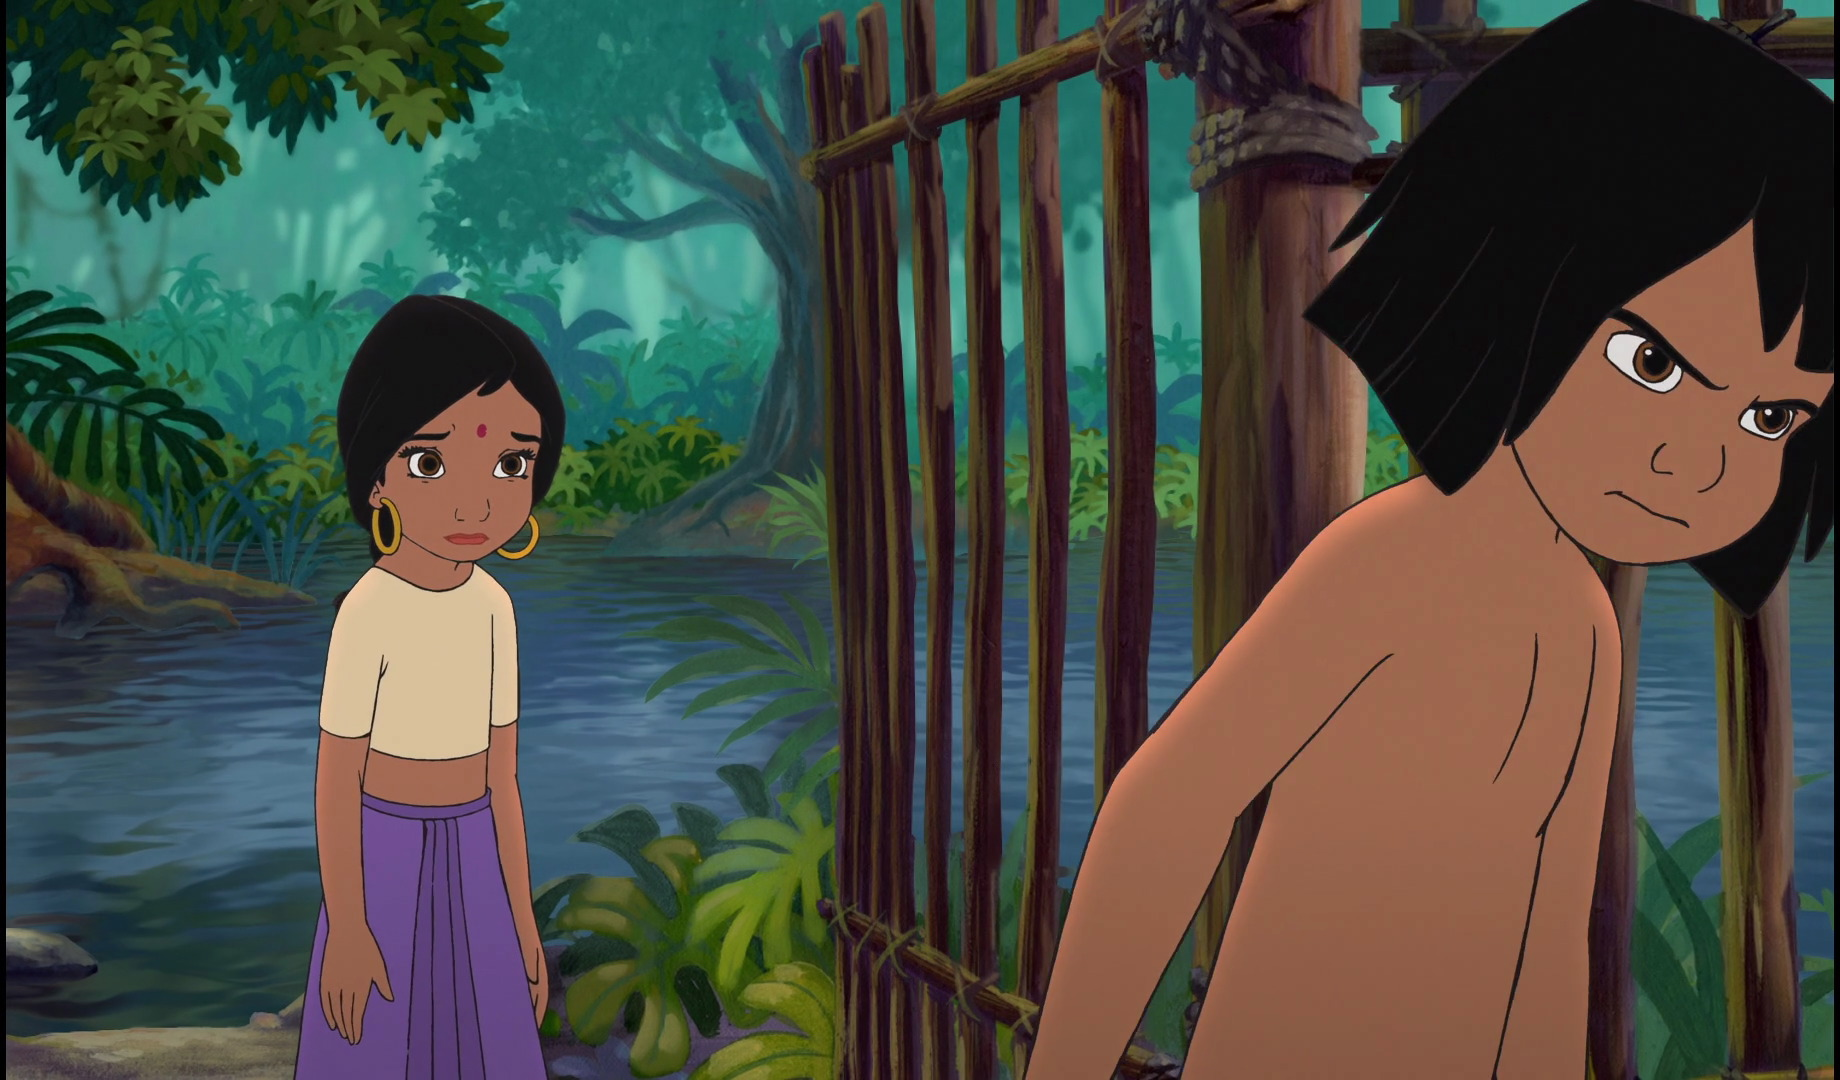 image mowgli is mad at shanti cause hes in troublejpg